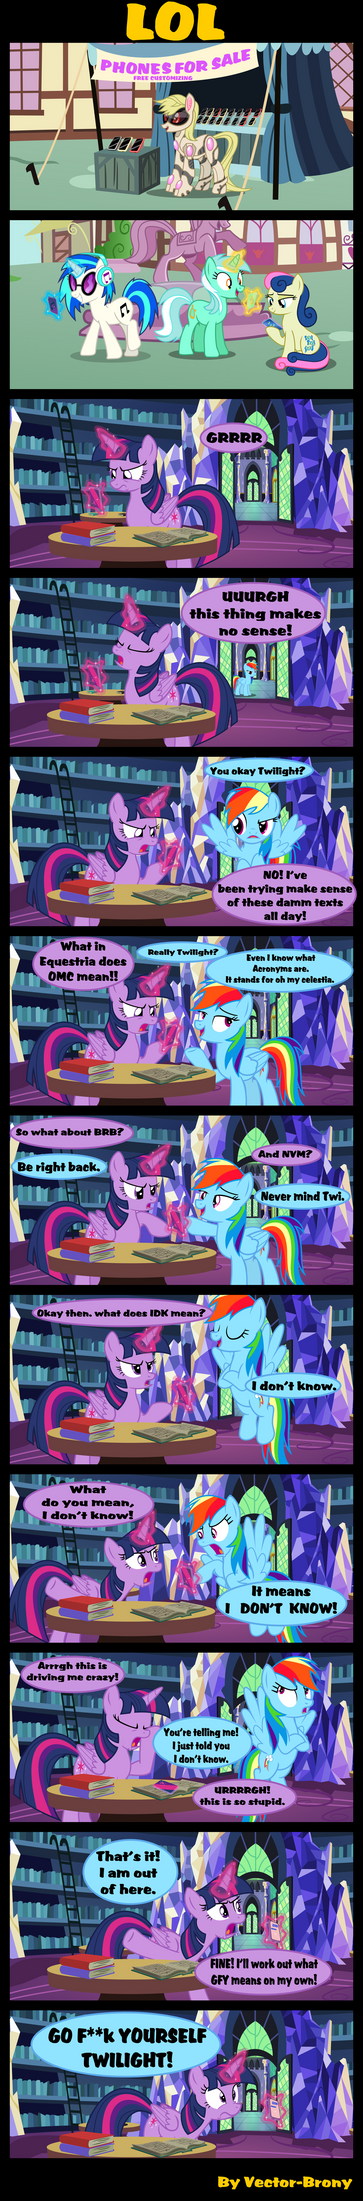 LOL by Vector-Brony